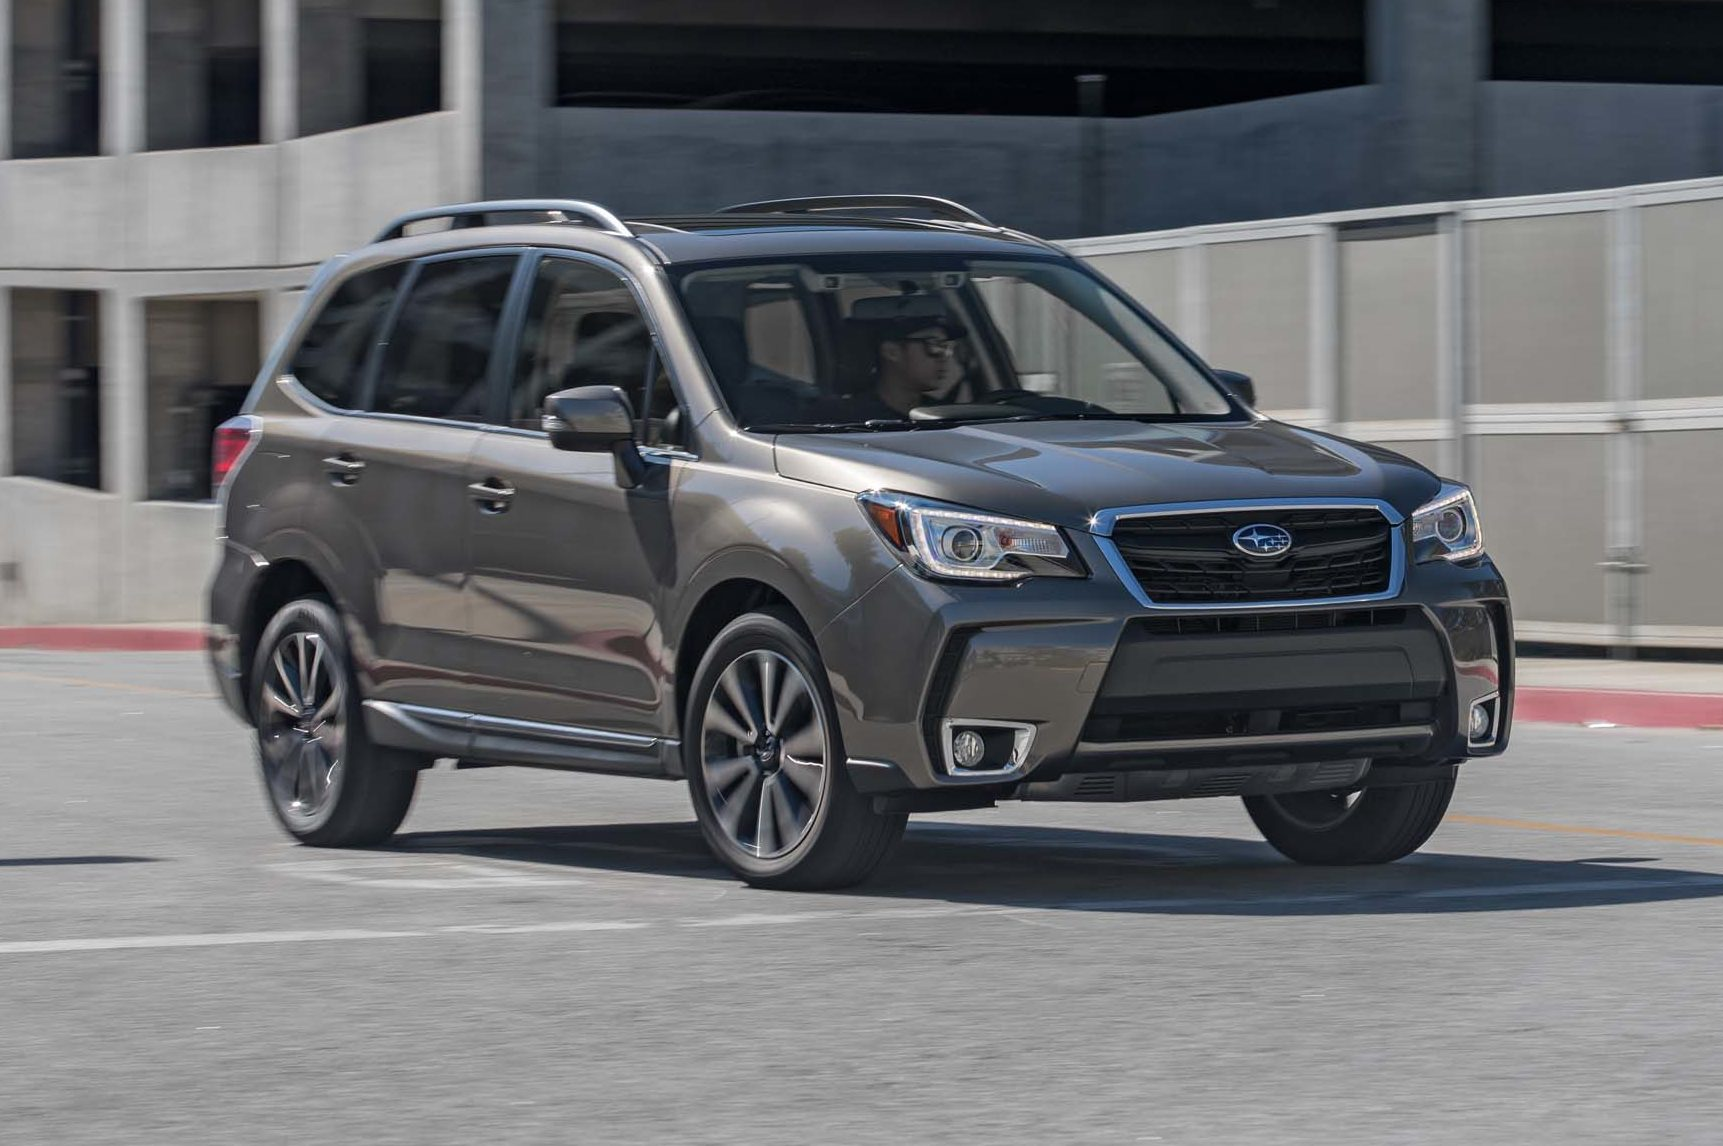 2017 Subaru Forester 20XT Touring Front Three Quarter In Motion 02 E1489512737447